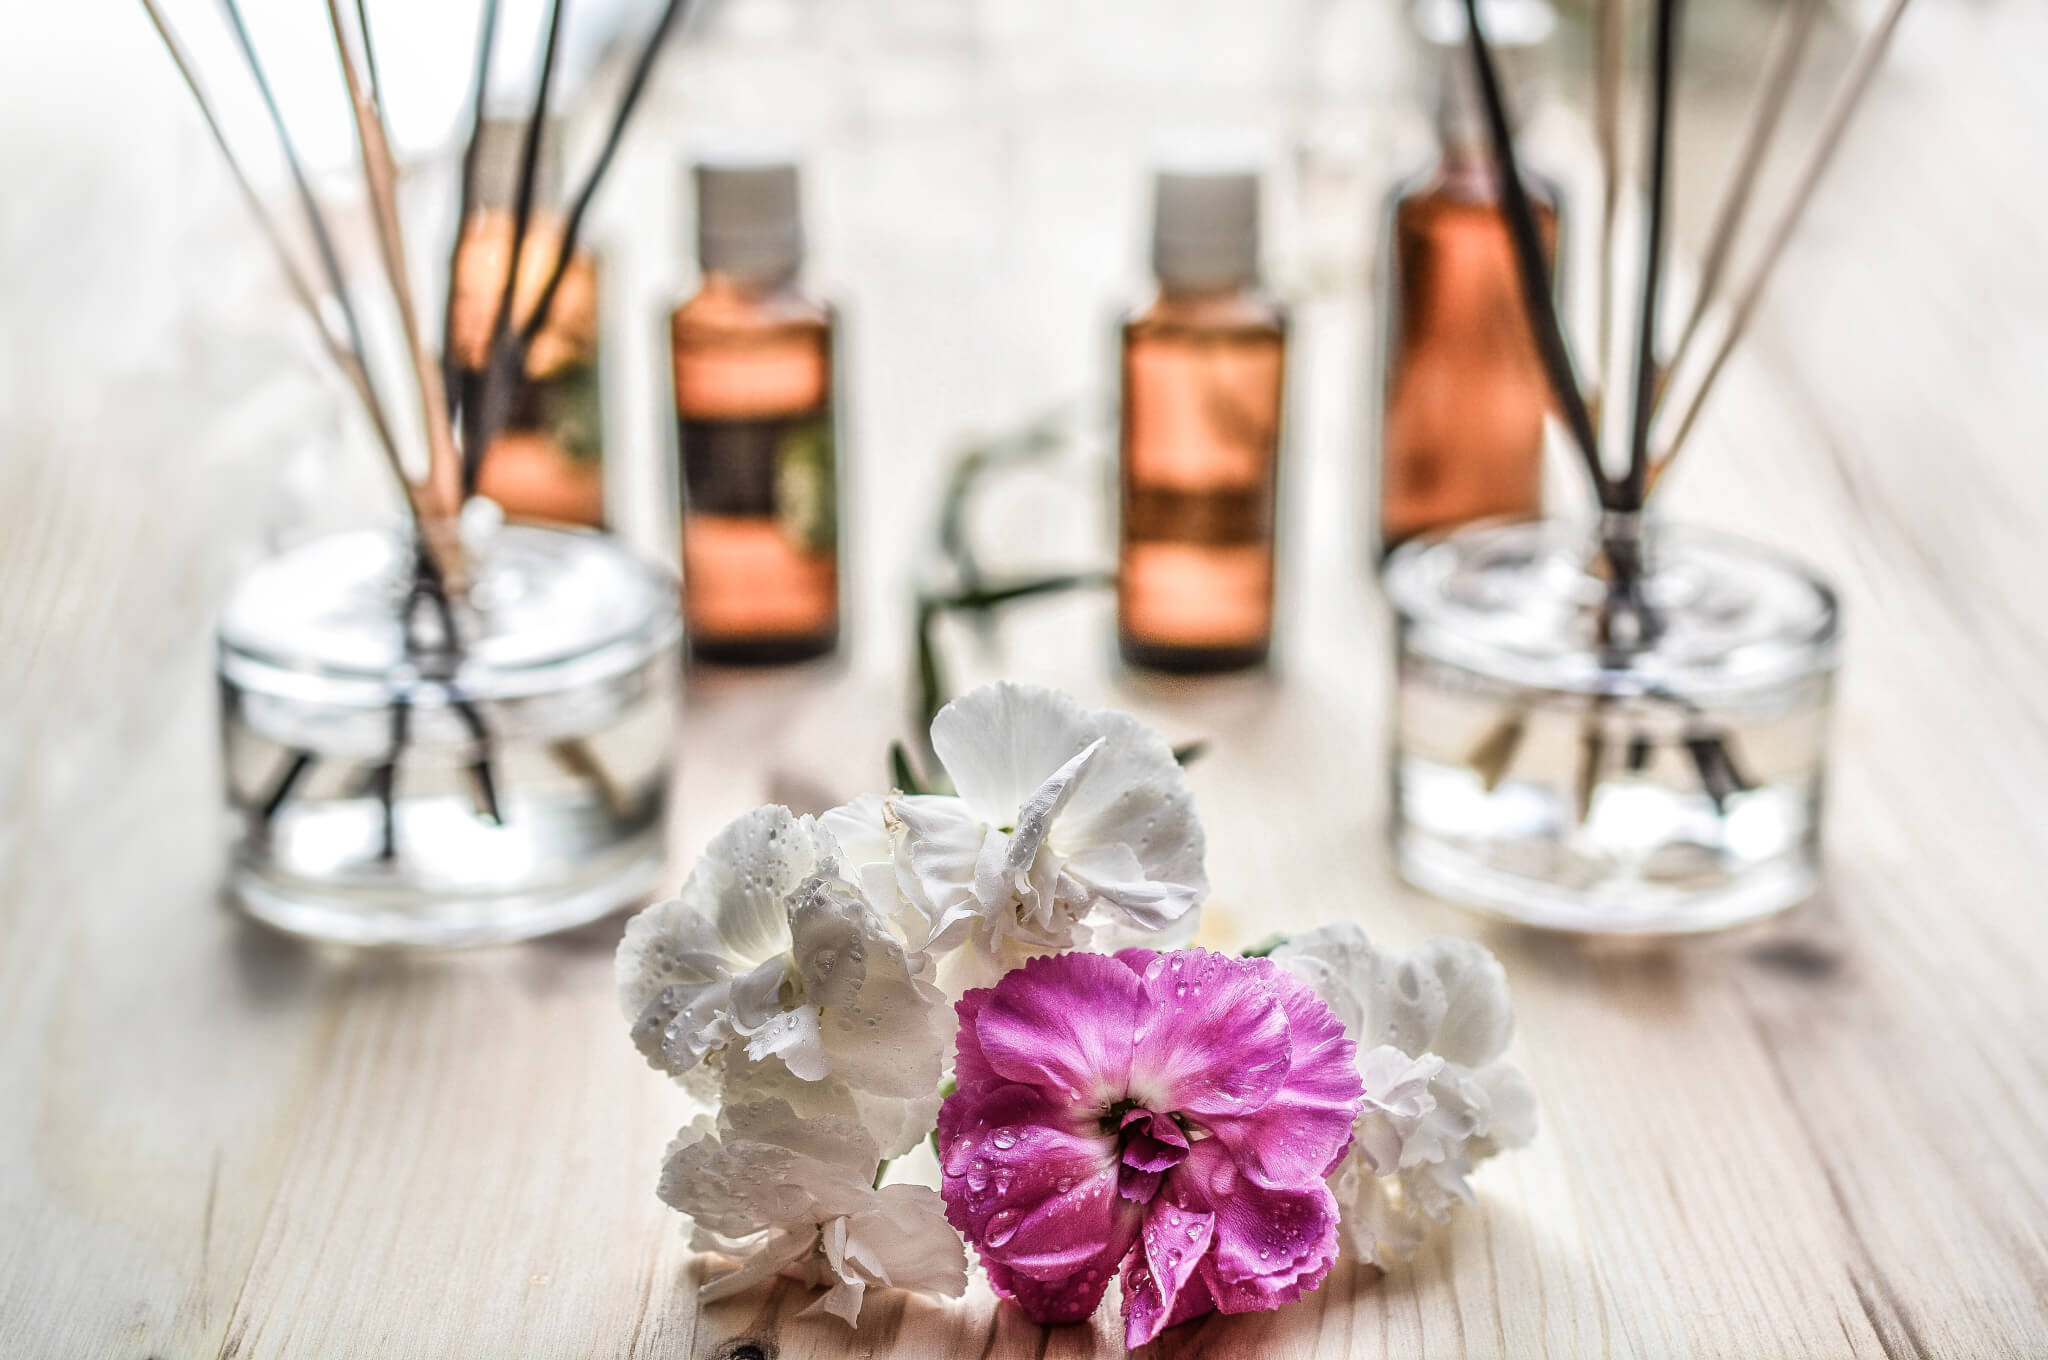 Essential oils can relieve stress.